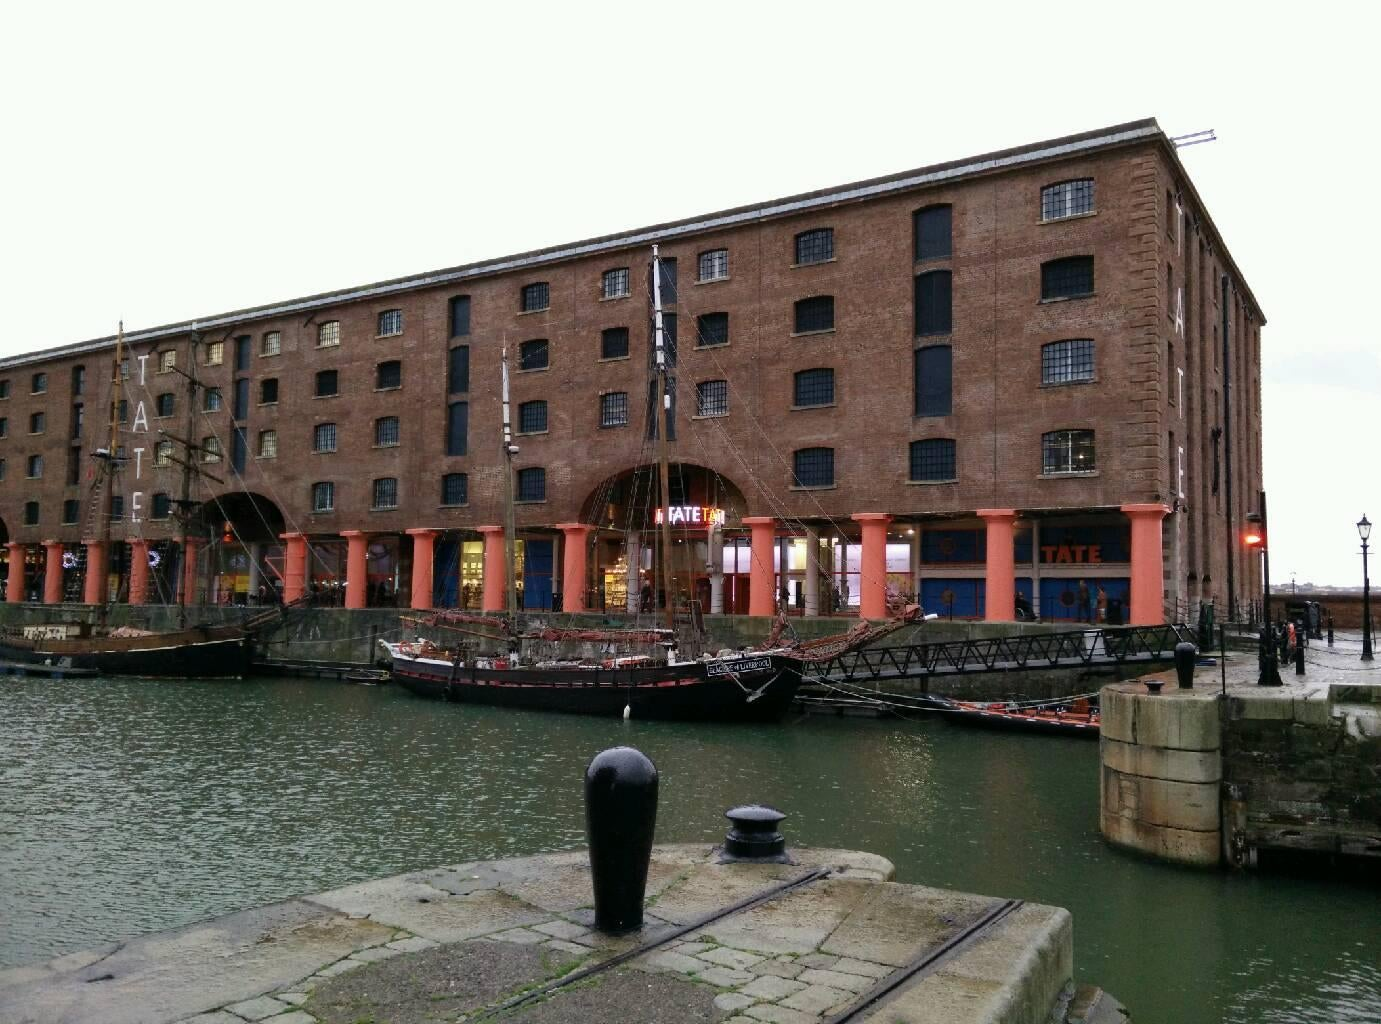 Remo en Royal Albert Dock